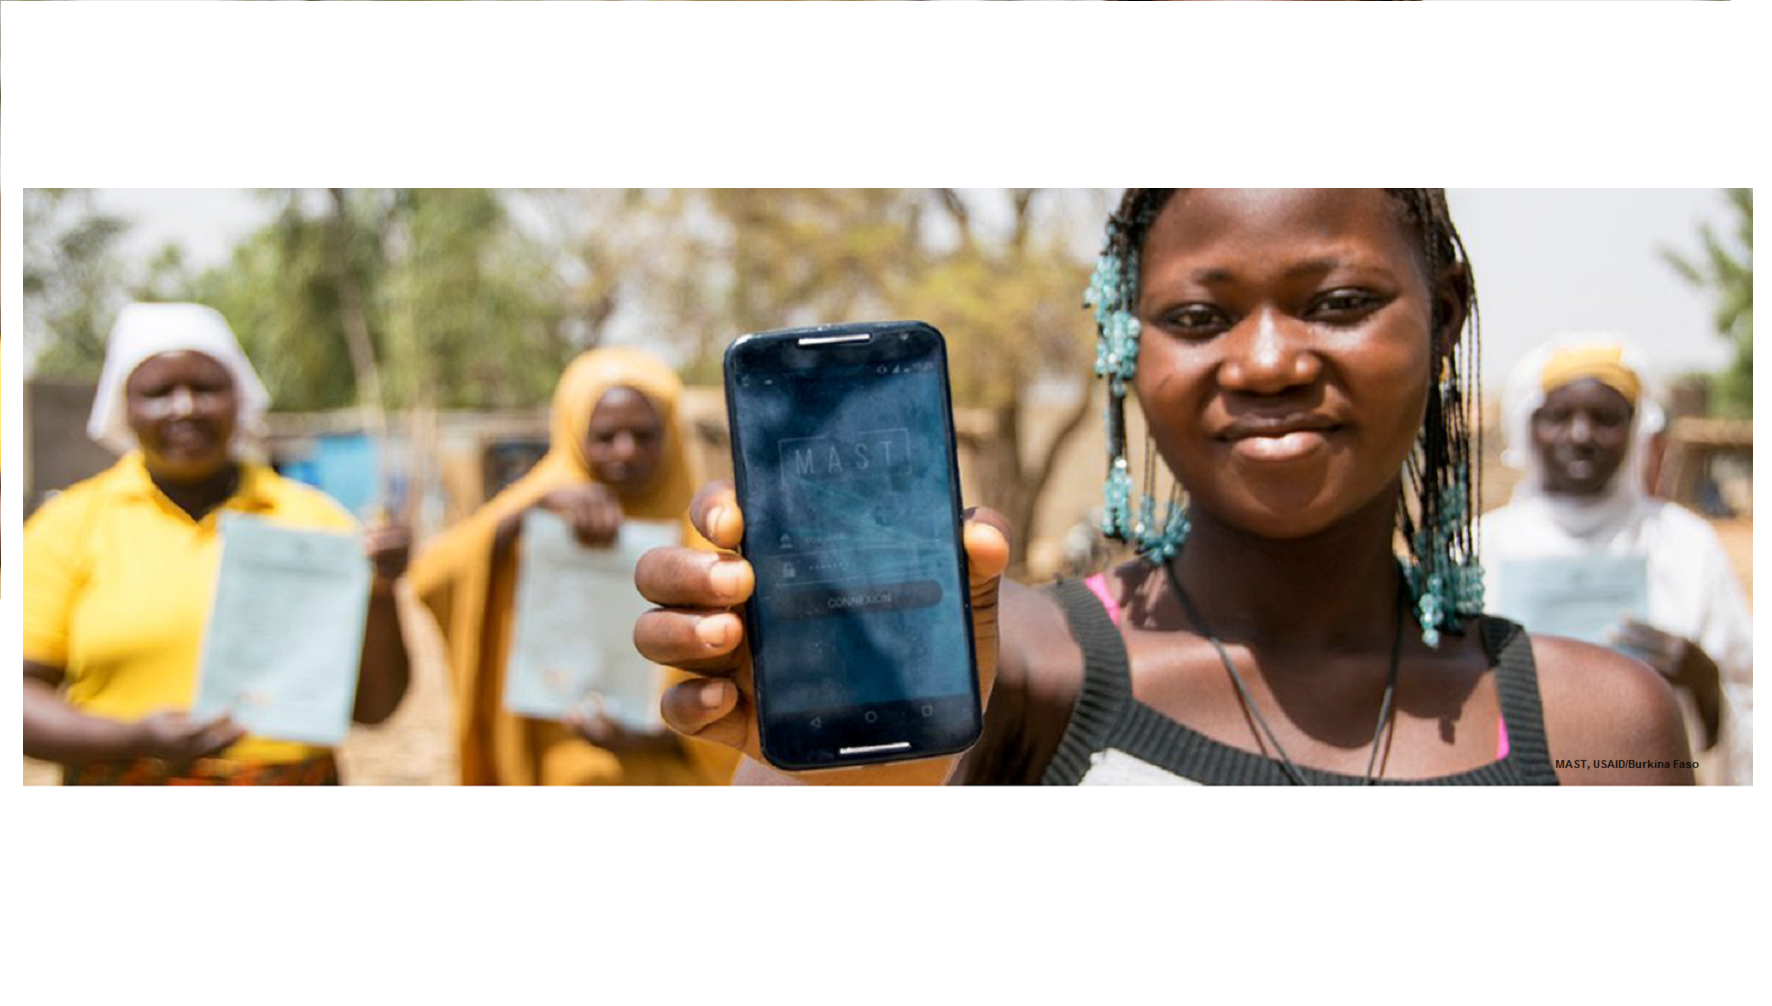 Girl with cell phone, MAST, USAID Burkina Faso